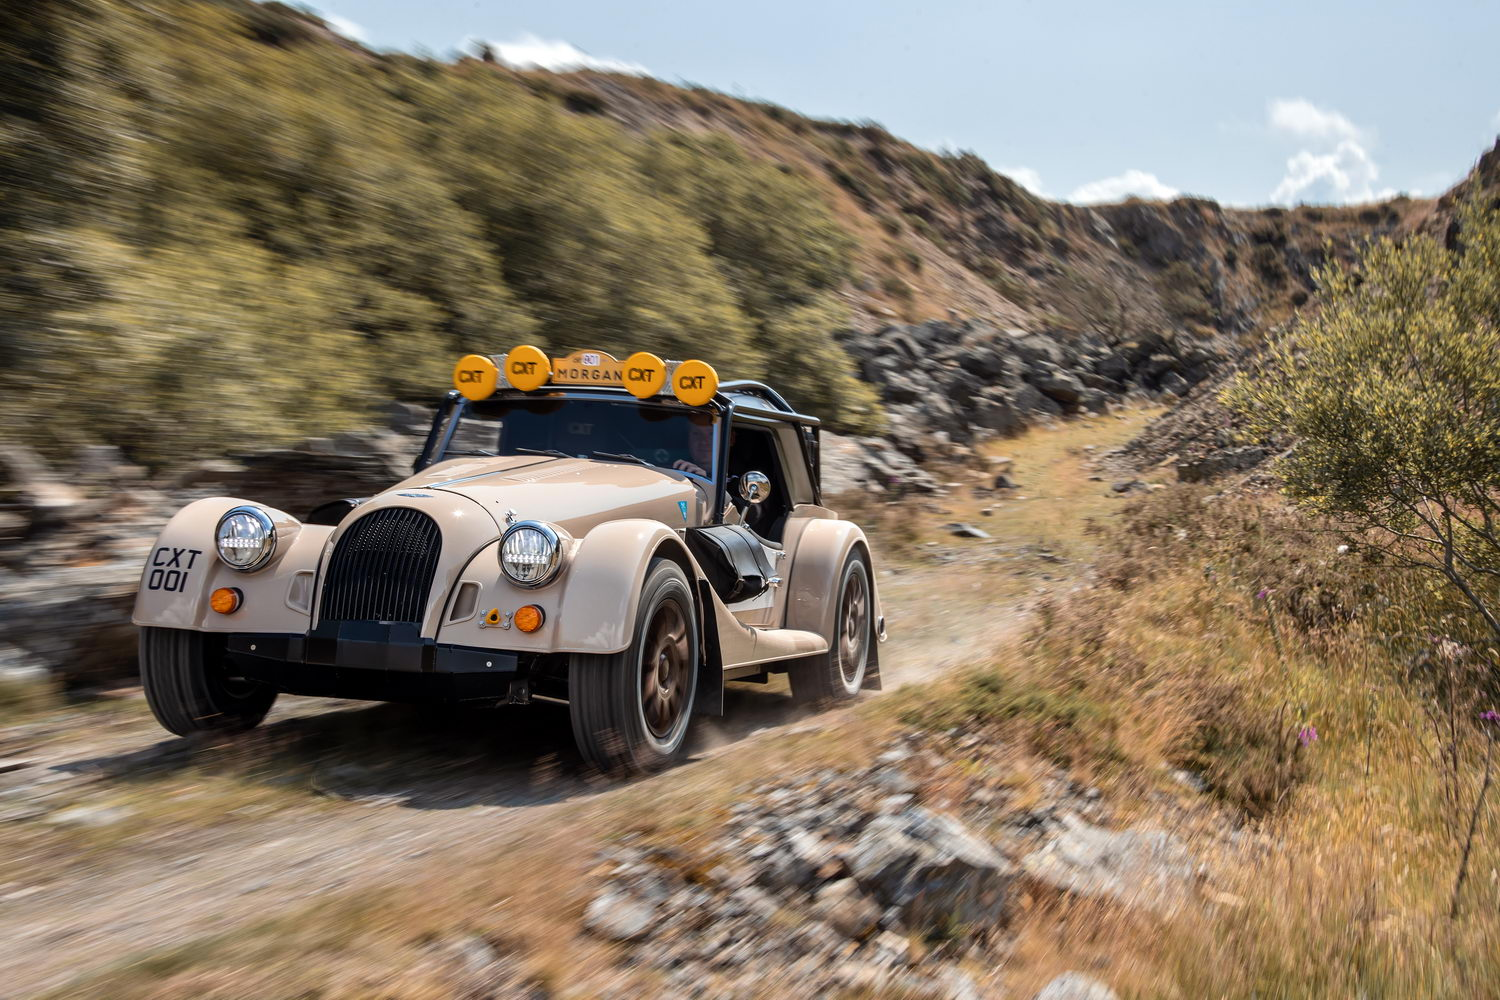 Car News   Morgan Plus Four goes off-road as CX-T   CompleteCar.ie